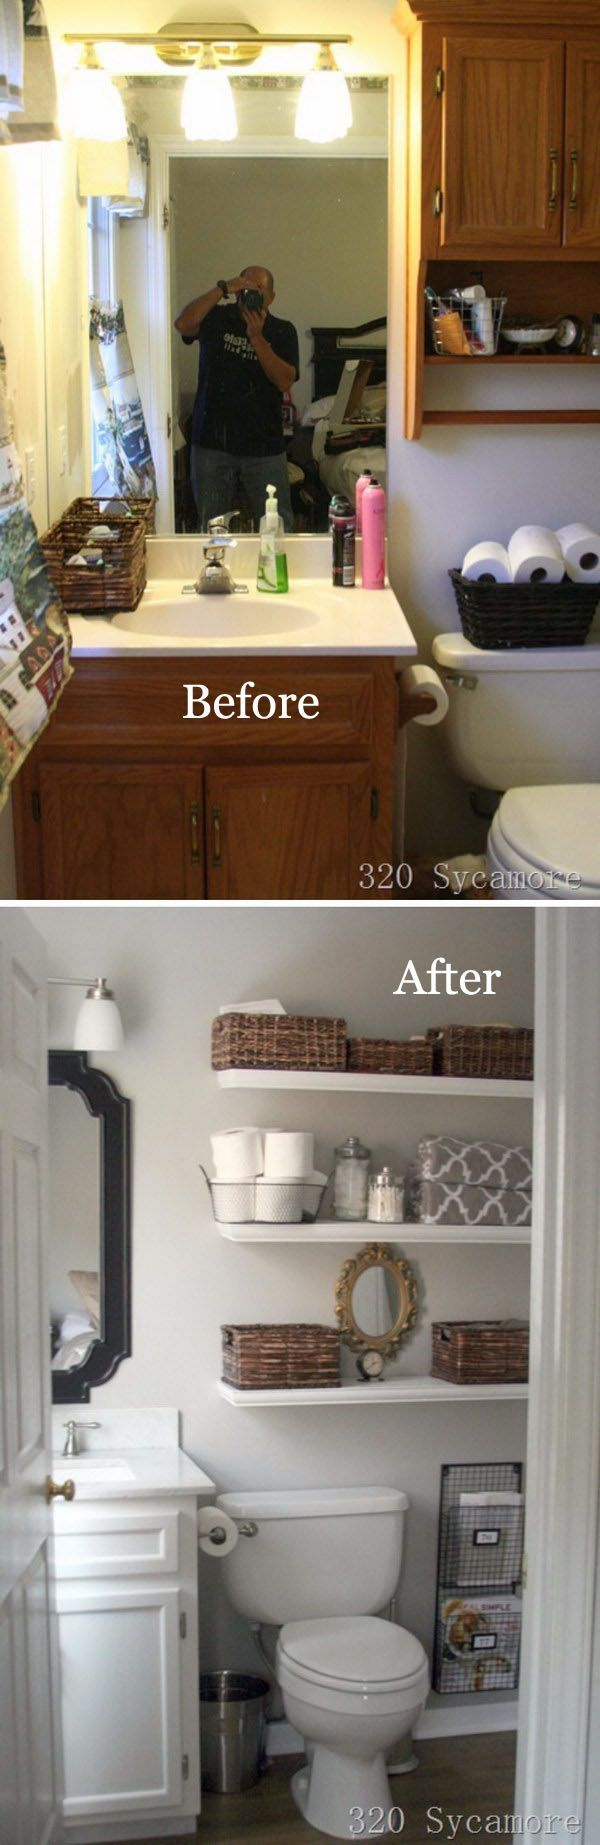 25 creative small bathrooms ideas to discover and try on pinterest small bathroom makeovers small baths and small master bathroom ideas - Bathroom Design Ideas Small